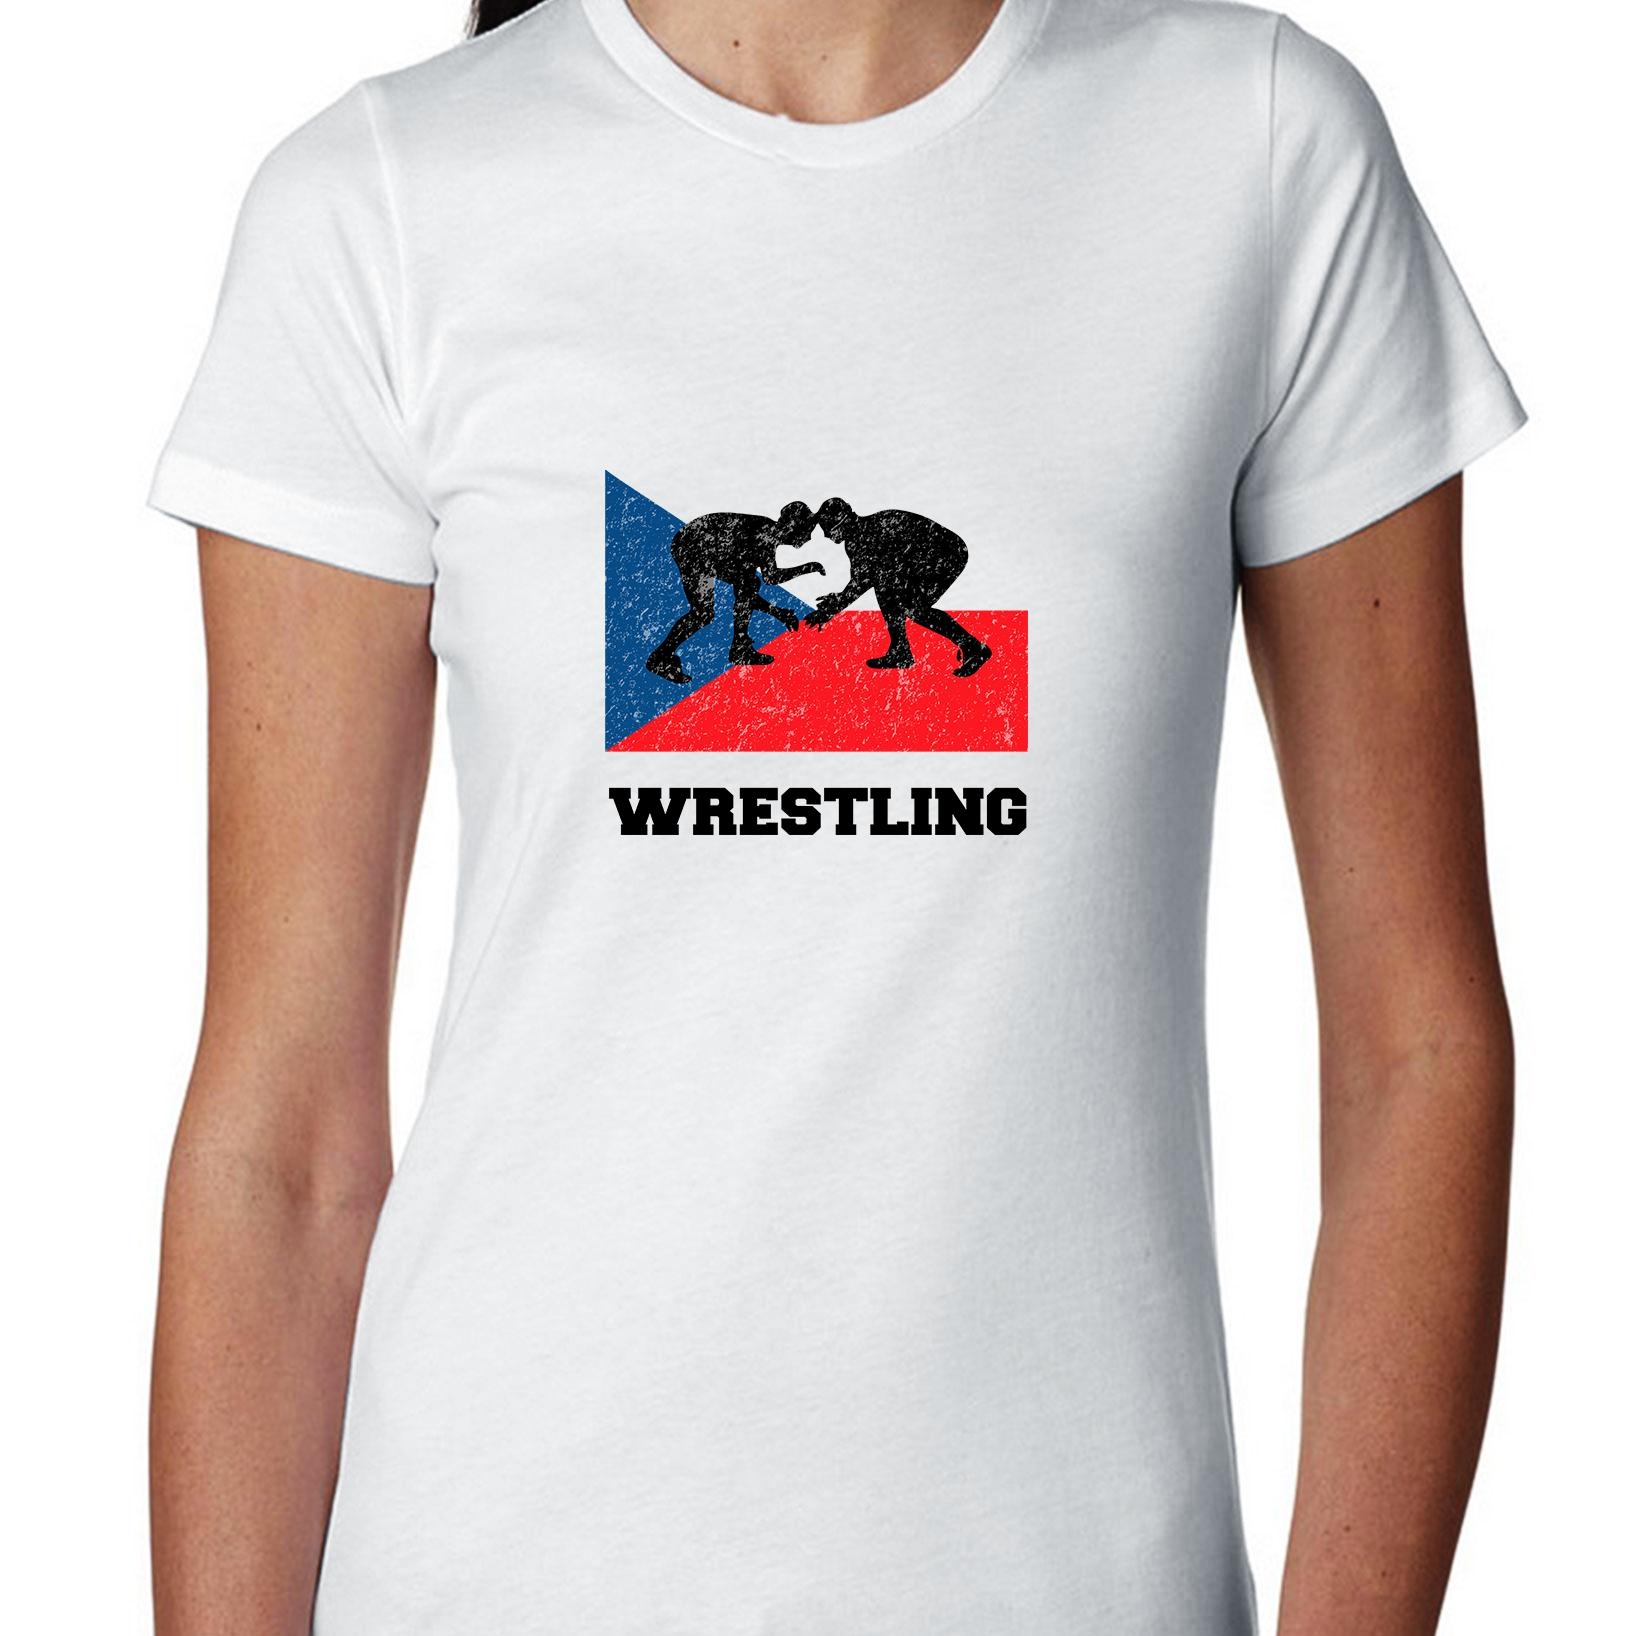 Czech Republic Olympic Wrestling Flag Silhouette Women's Cotton T-Shirt by Hollywood Thread